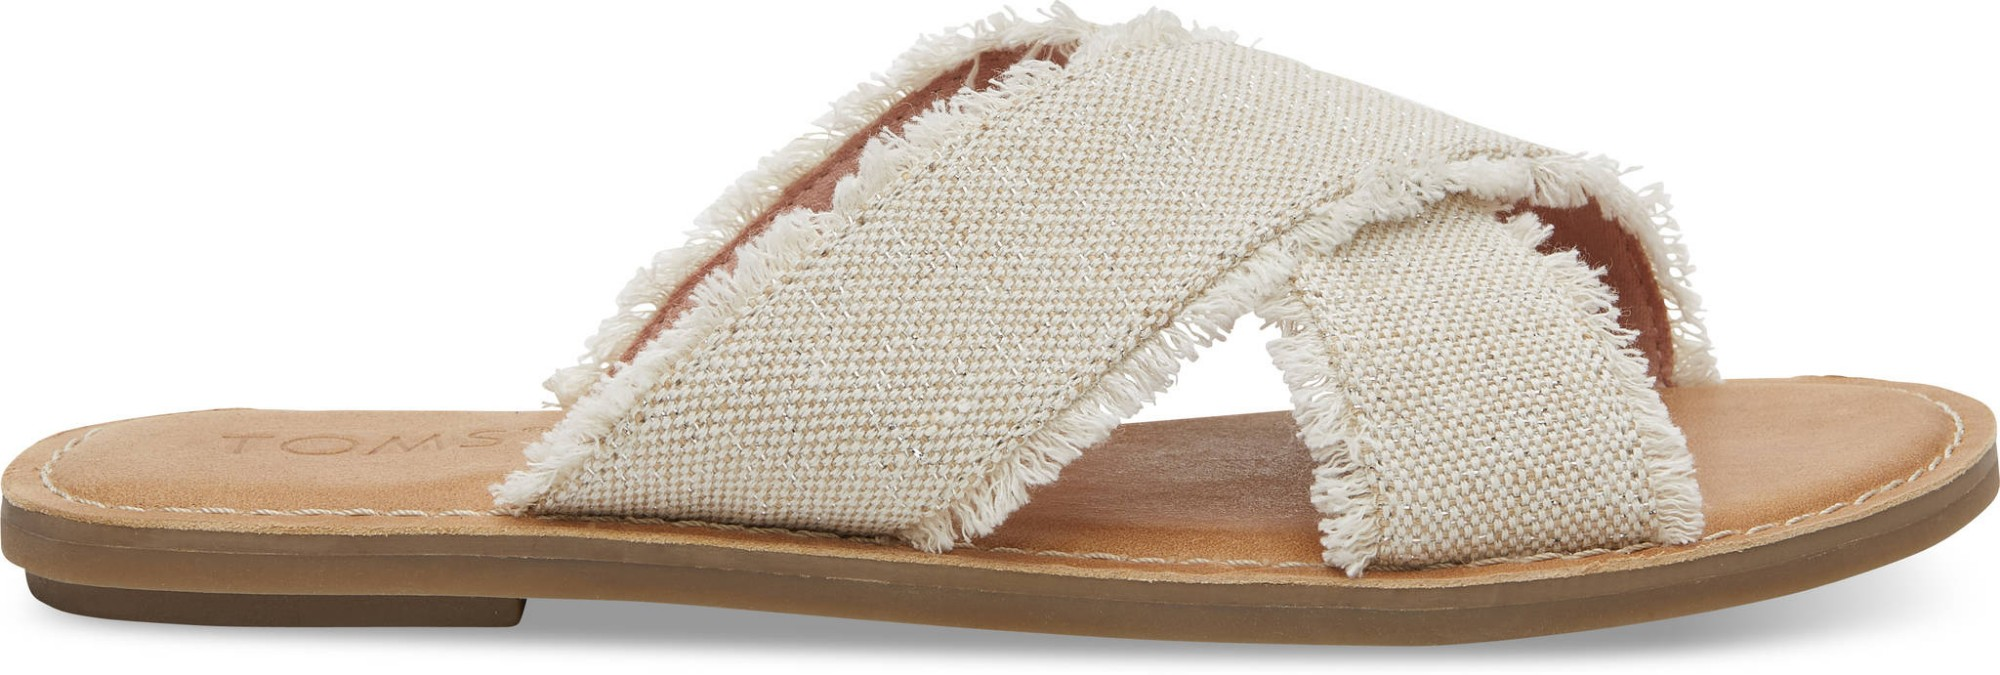 TOMS Metallic Jute Women's Viv Sandal Natural 37,5